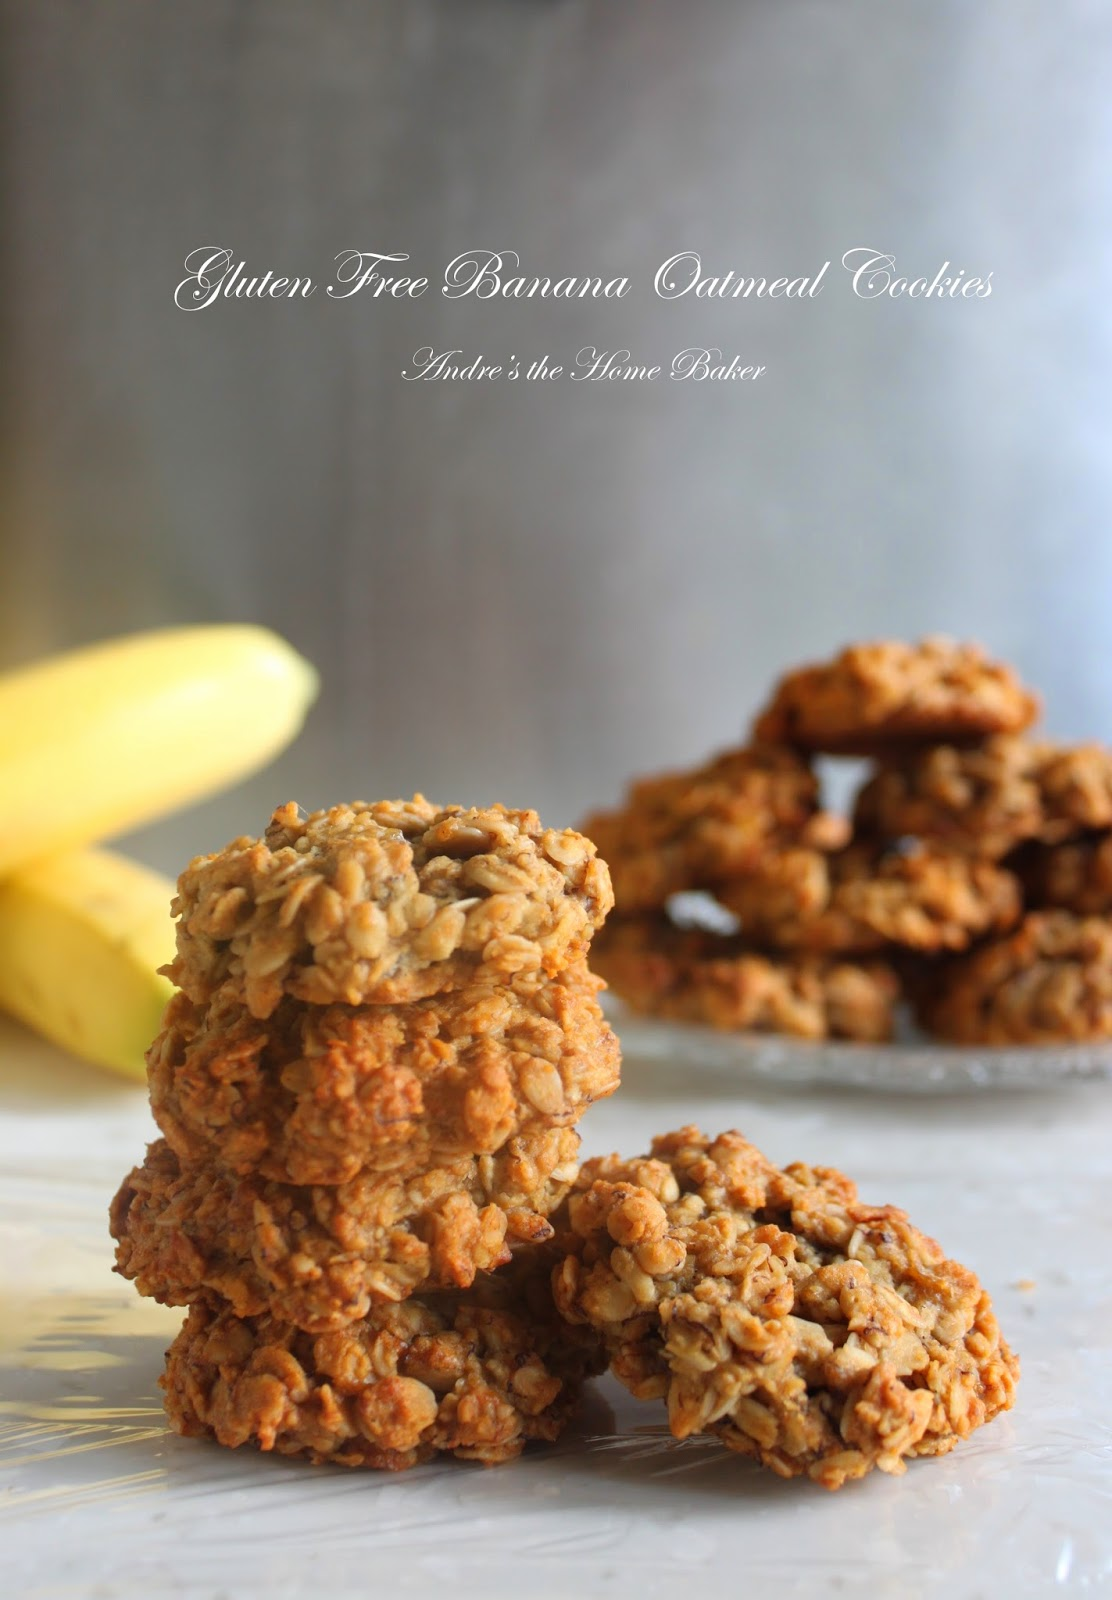 Andre's the Home Baker: ♥ Gluten Free Banana Oatmeal Cookies